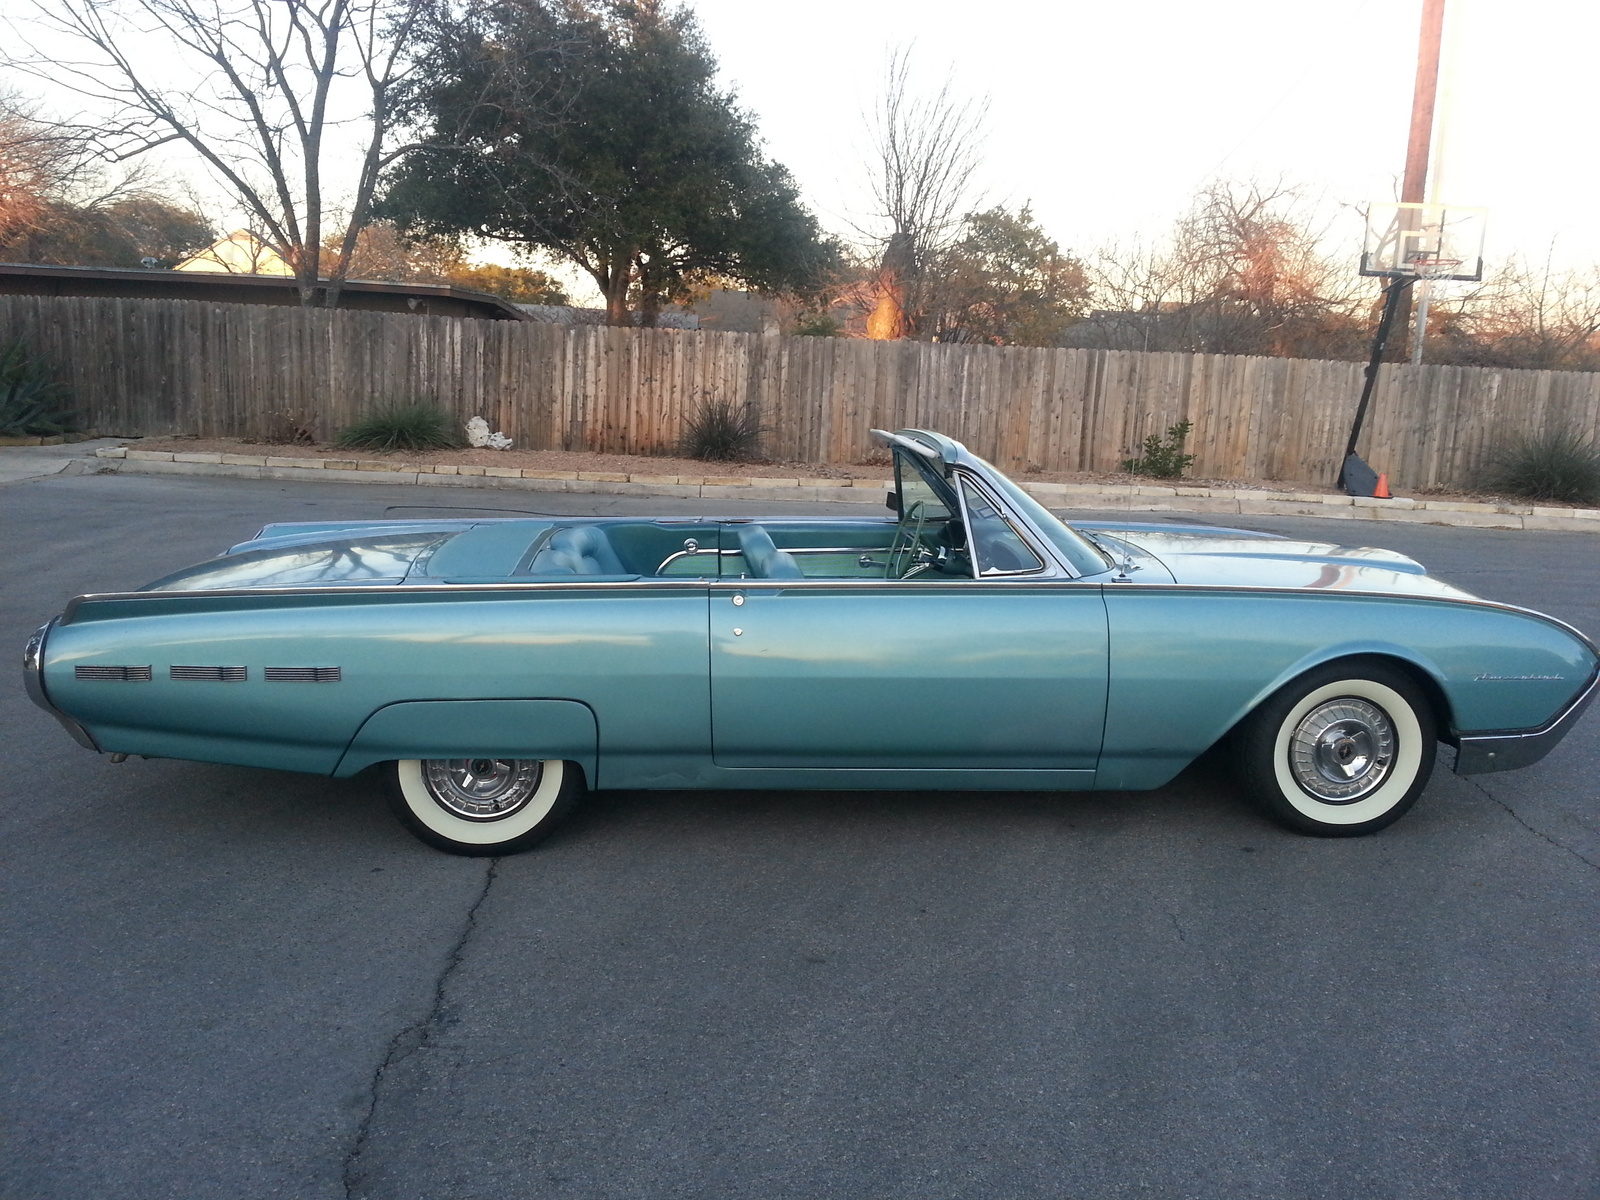 1962 Ford Thunderbird Overview C4616 on top rated car seats